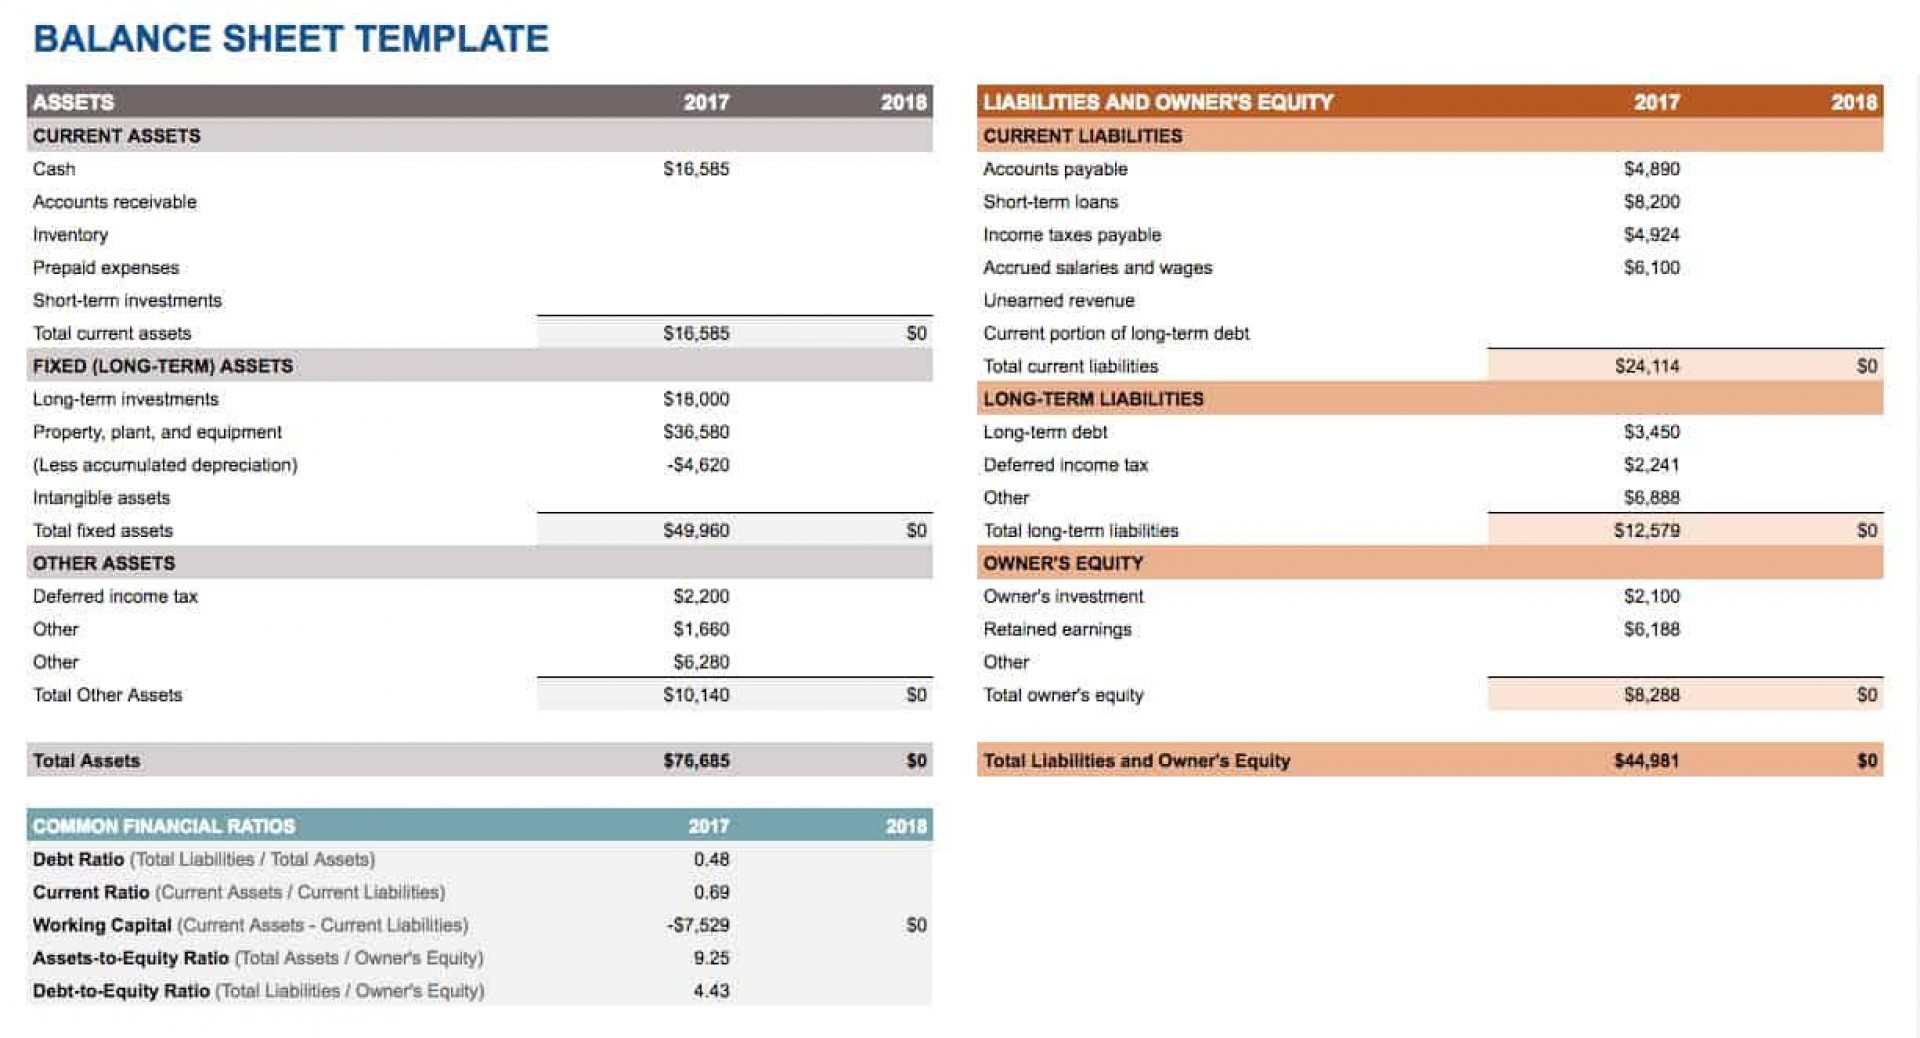 008 Best Simple Balance Sheet Template High Resolution  Example For Small Busines Sample A Church1920